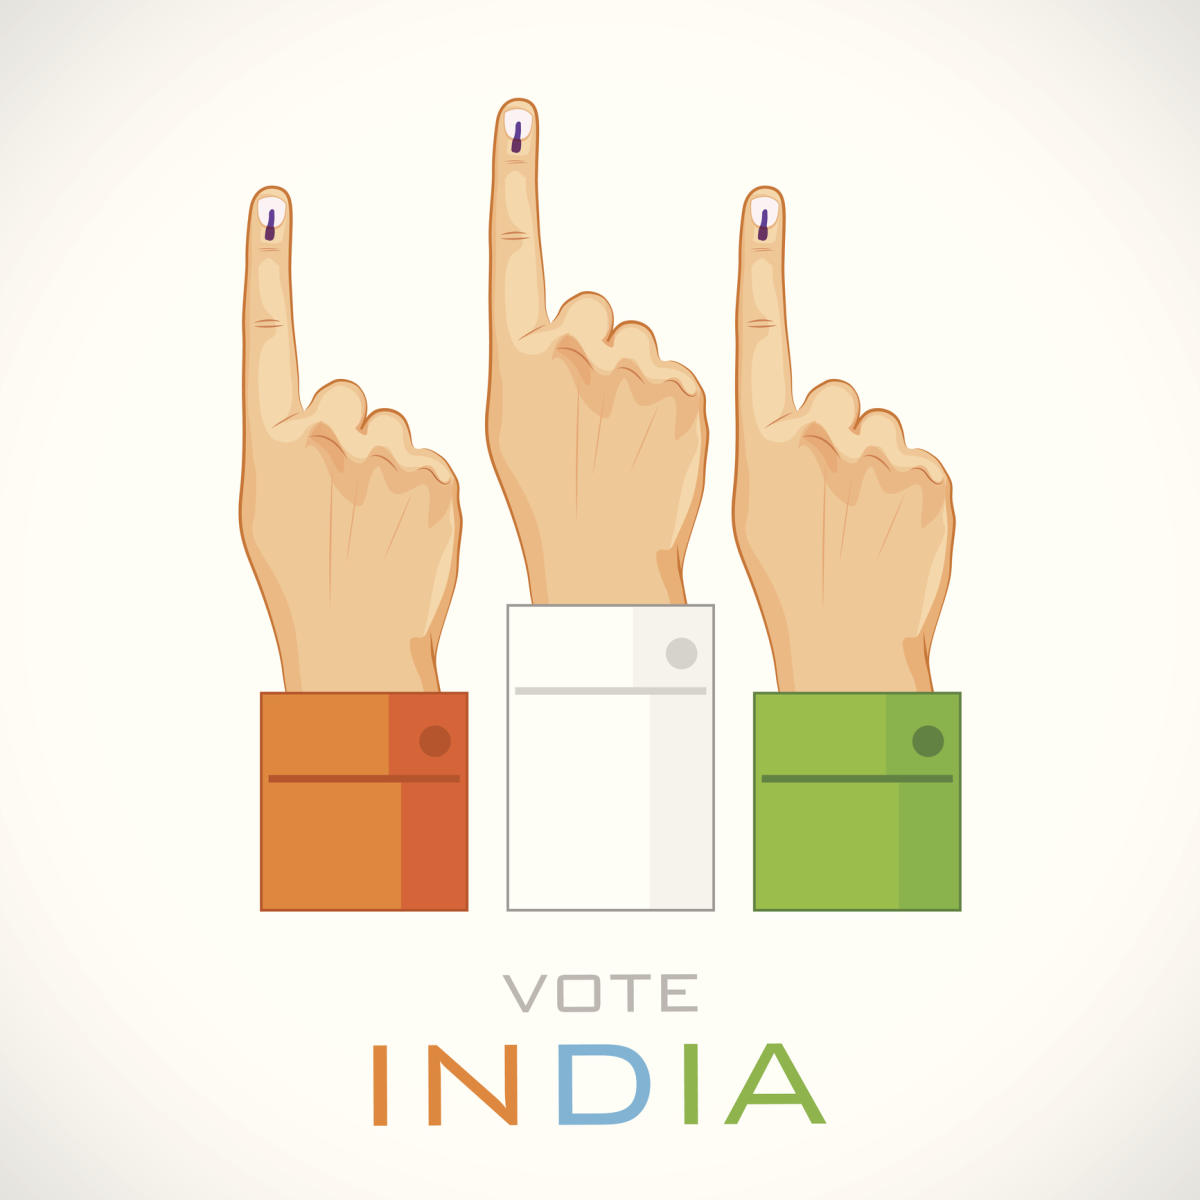 Chief Election Commissioner O P Rawat said it would be difficult to make logistical arrangements for simultaneous polls.